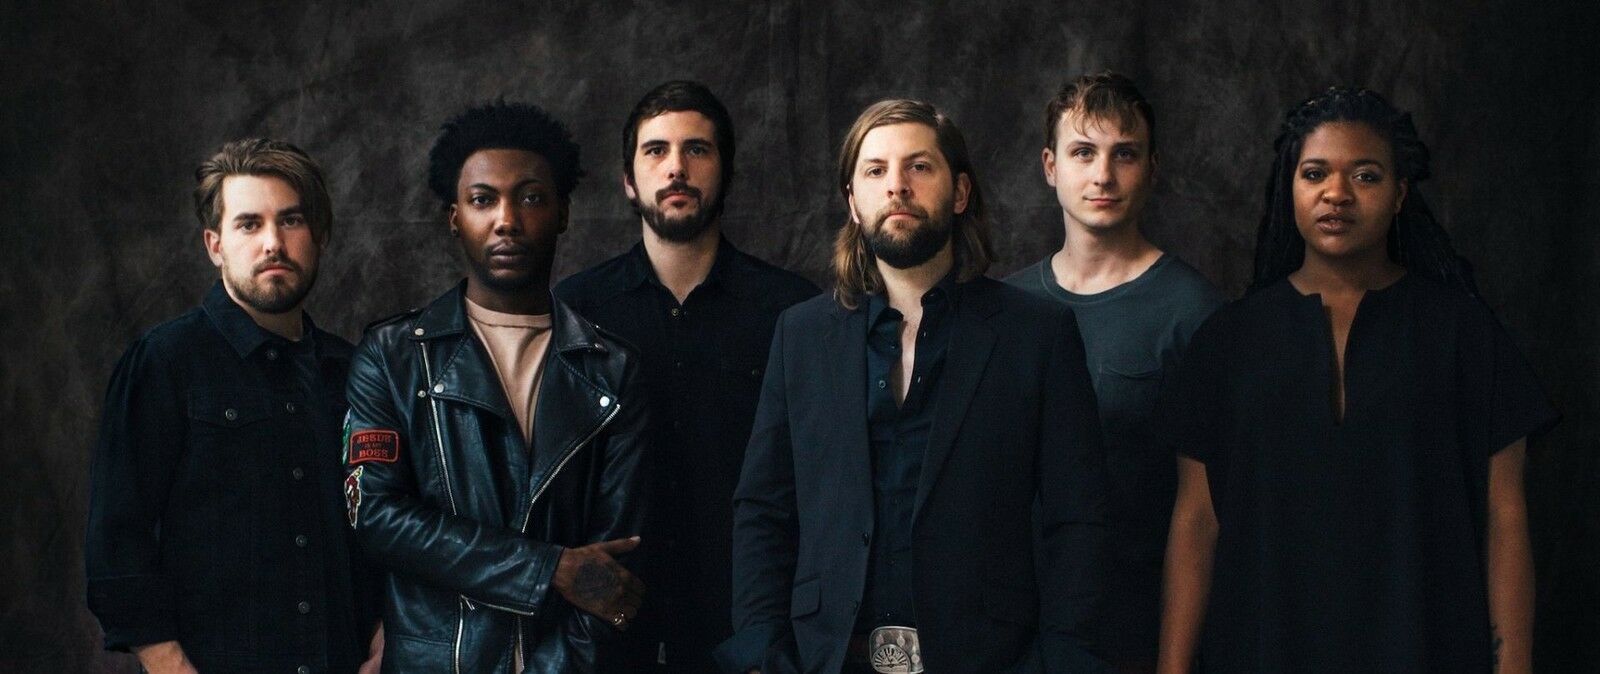 Welshly Arms with The Glorious Sons, Charming Liars